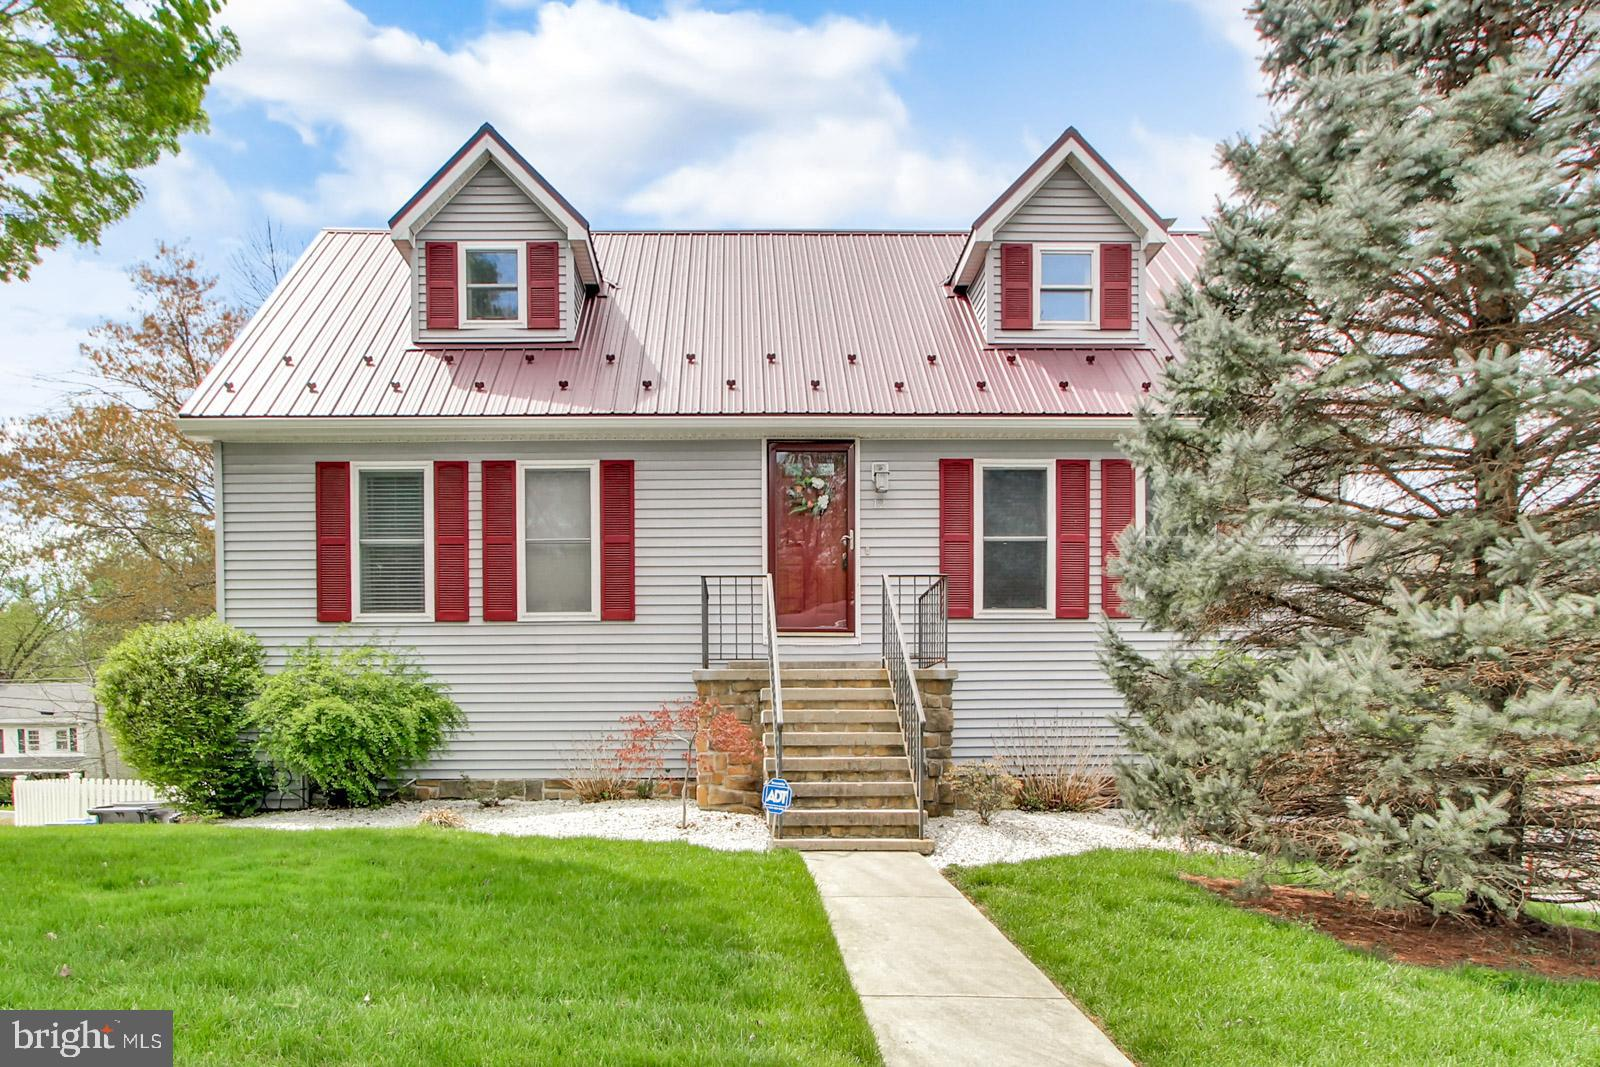 12 LIBERTY DRIVE, MOUNT HOLLY SPRINGS, PA 17065